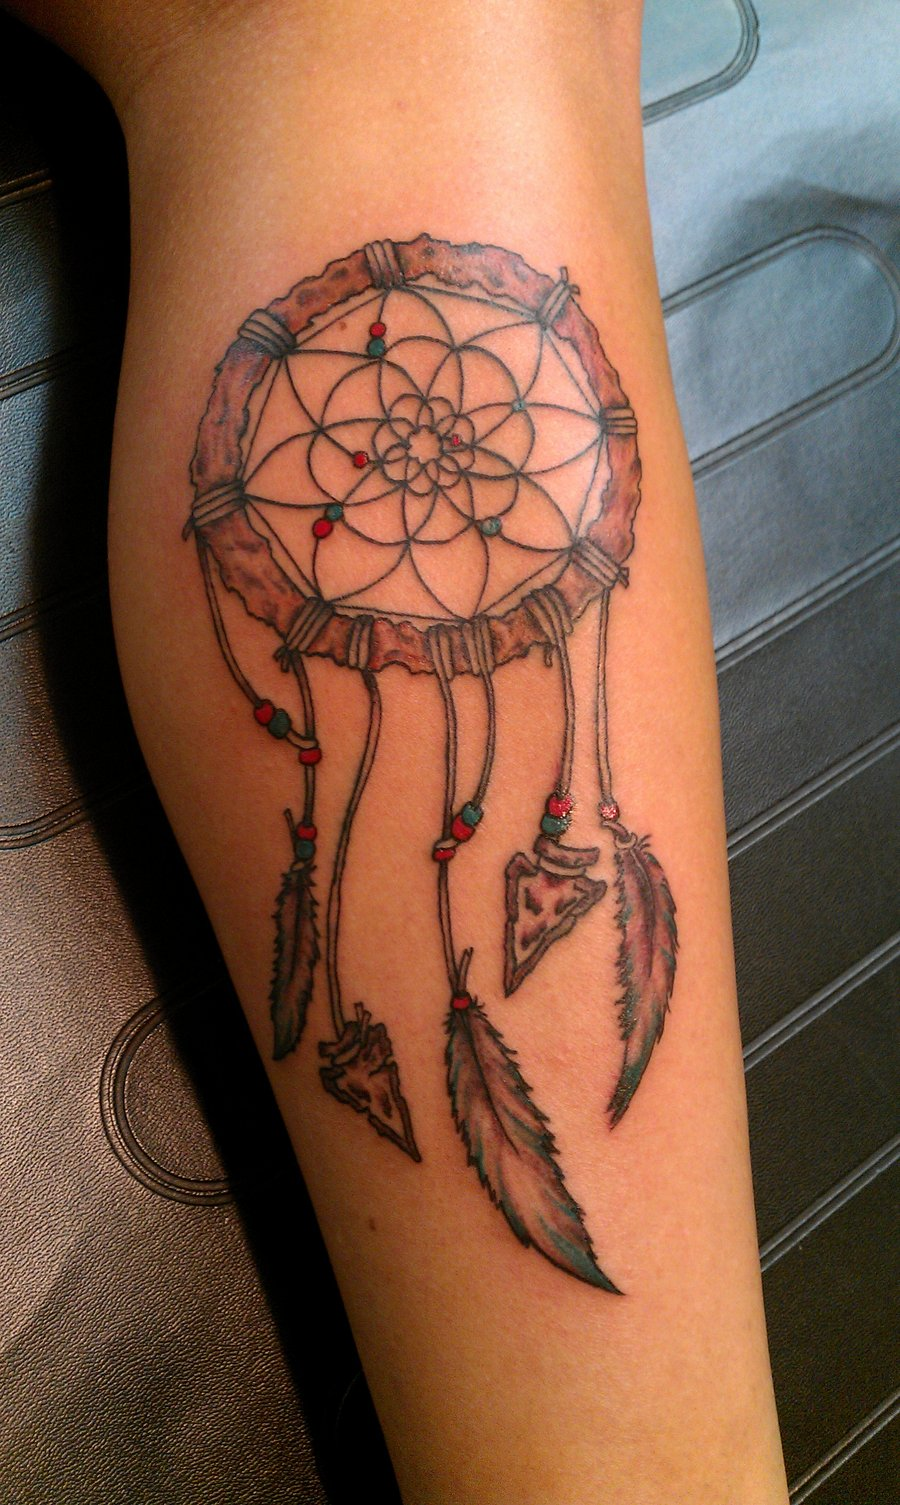 Dreamcatcher Tattoos Designs Ideas And Meaning Tattoos For You